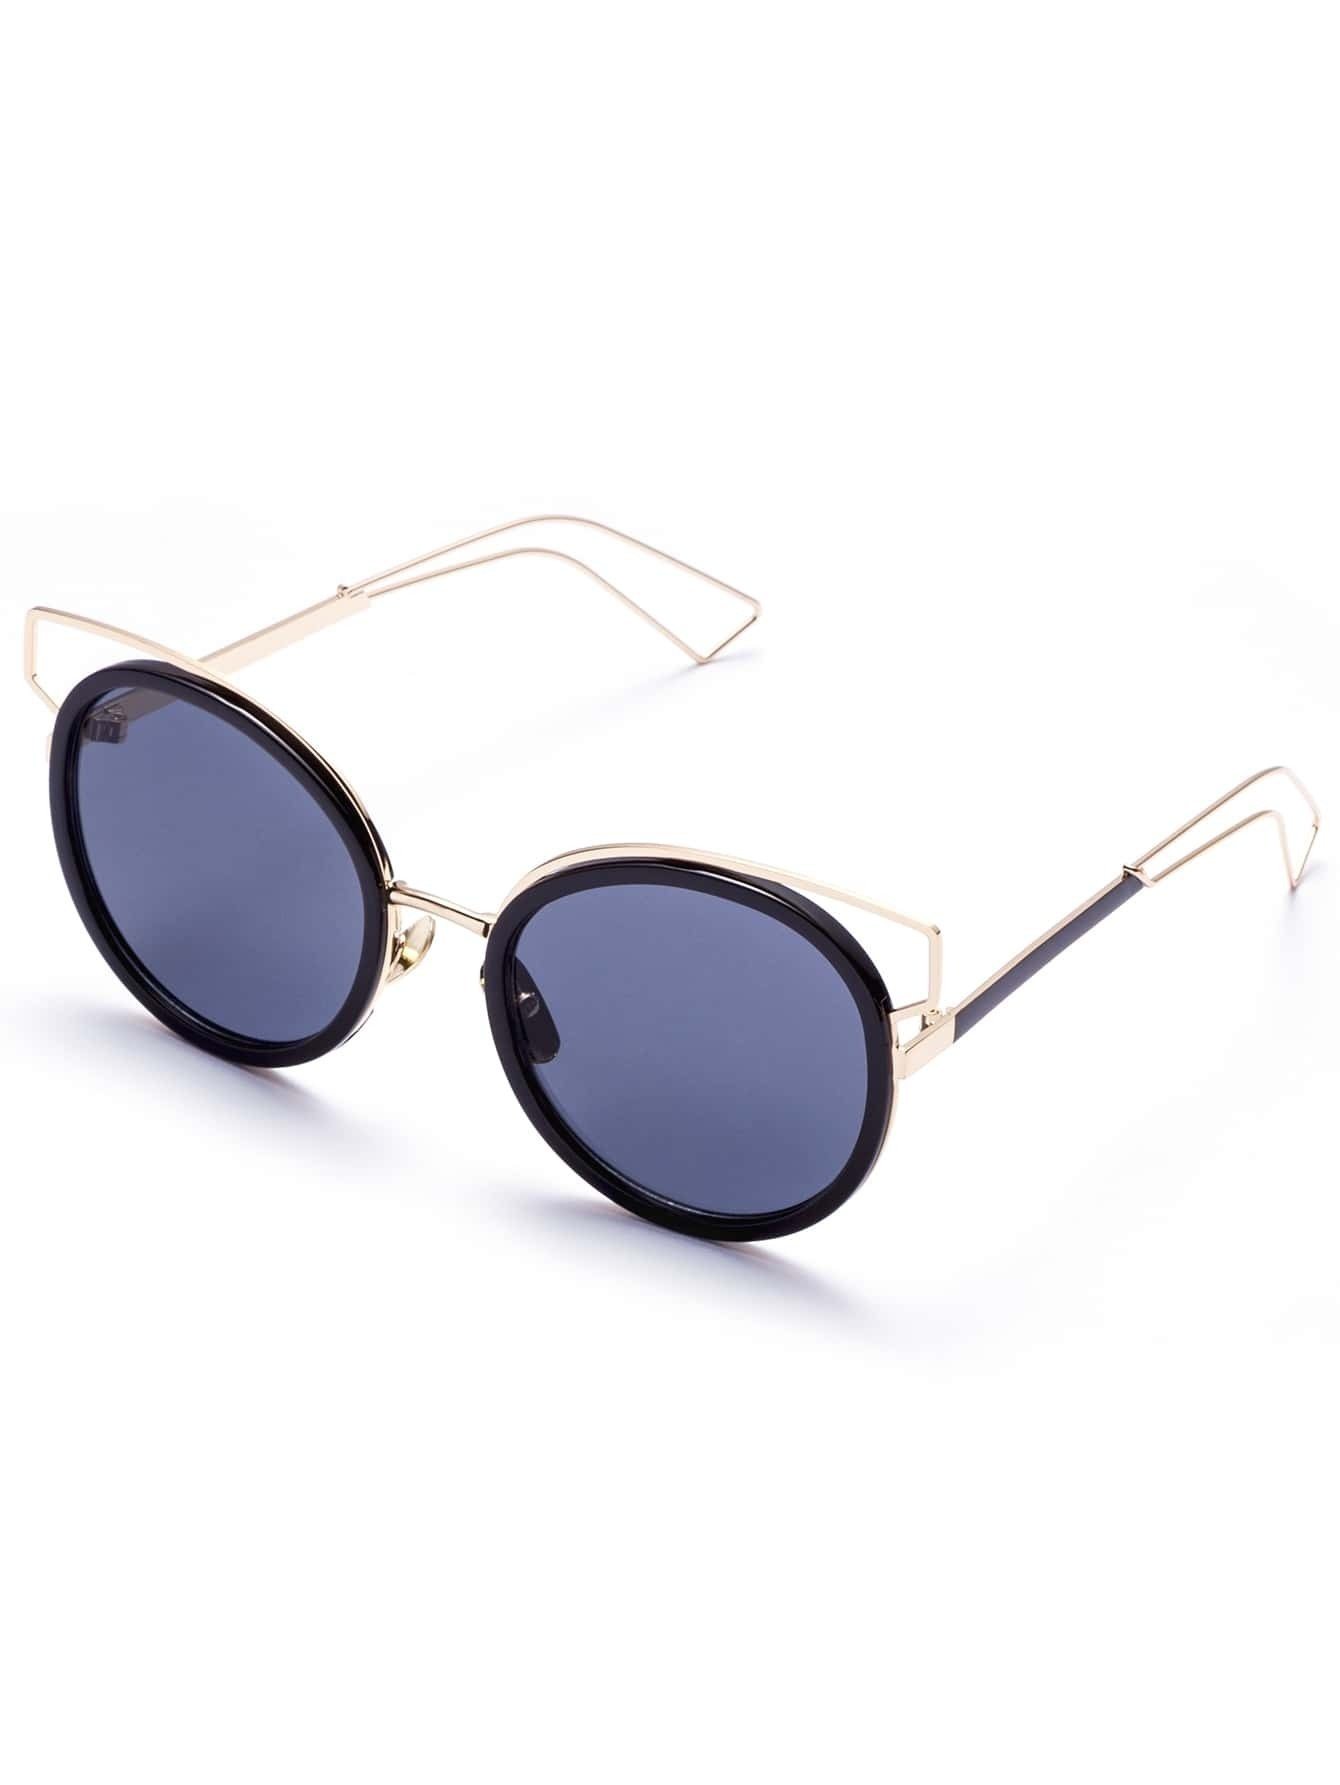 Sunglasses With Gold Frame : Gold Frame Grey Lens Sunglasses